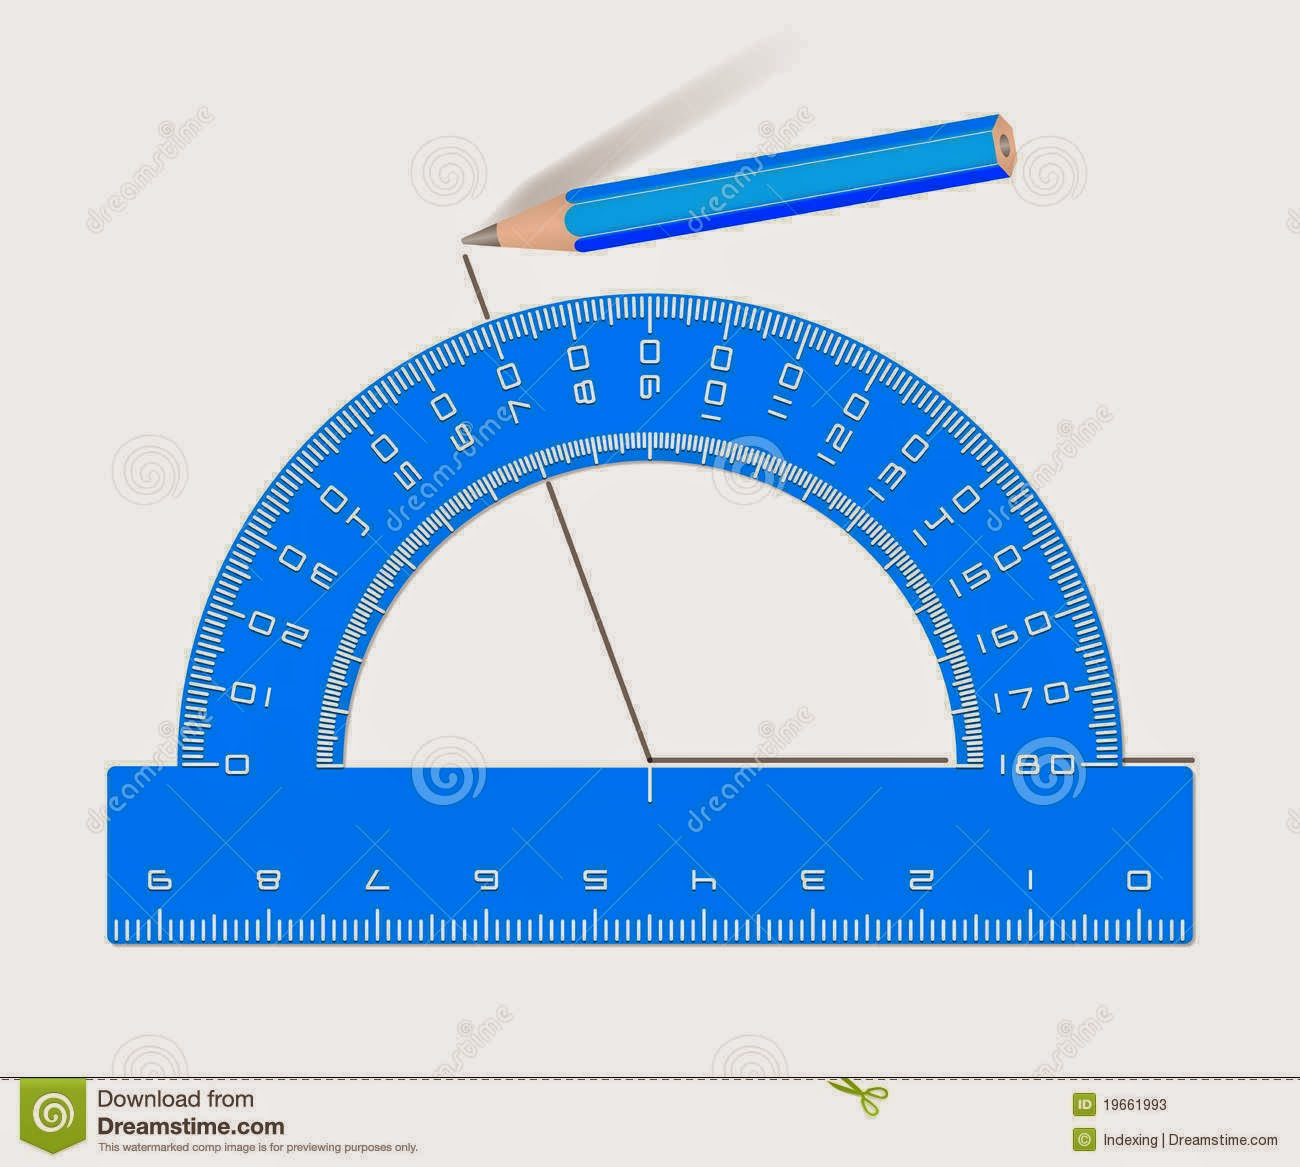 http://www.teacherled.com/resources/anglemeasure/anglemeasureload.html